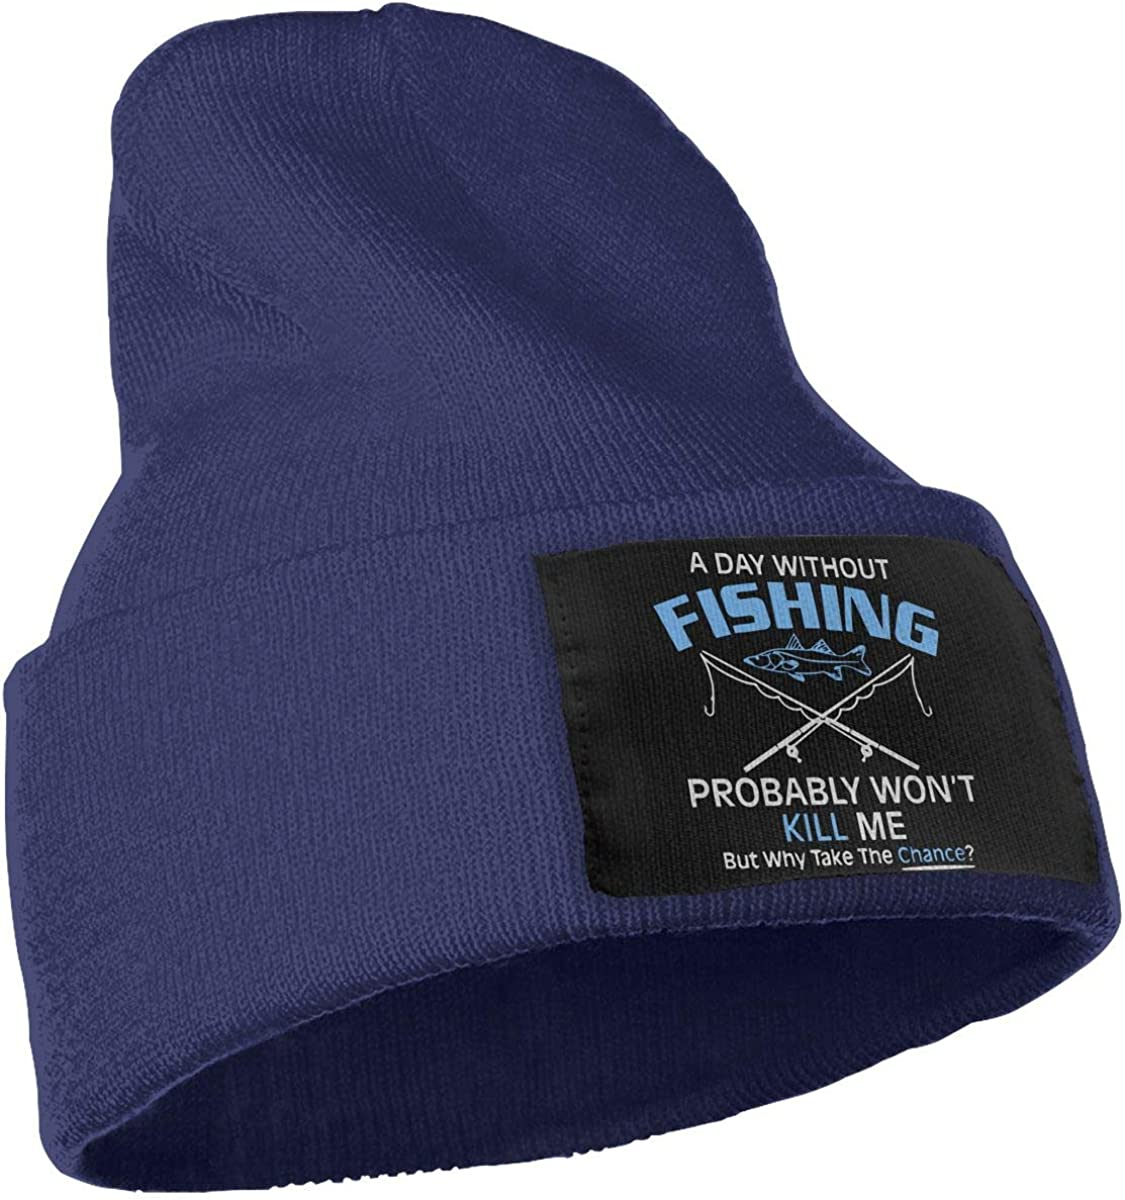 Day Without Fishing Probably Wont Kill Me-3 Warm Skull Cap WHOO93@Y Mens and Womens 100/% Acrylic Knitted Hat Cap